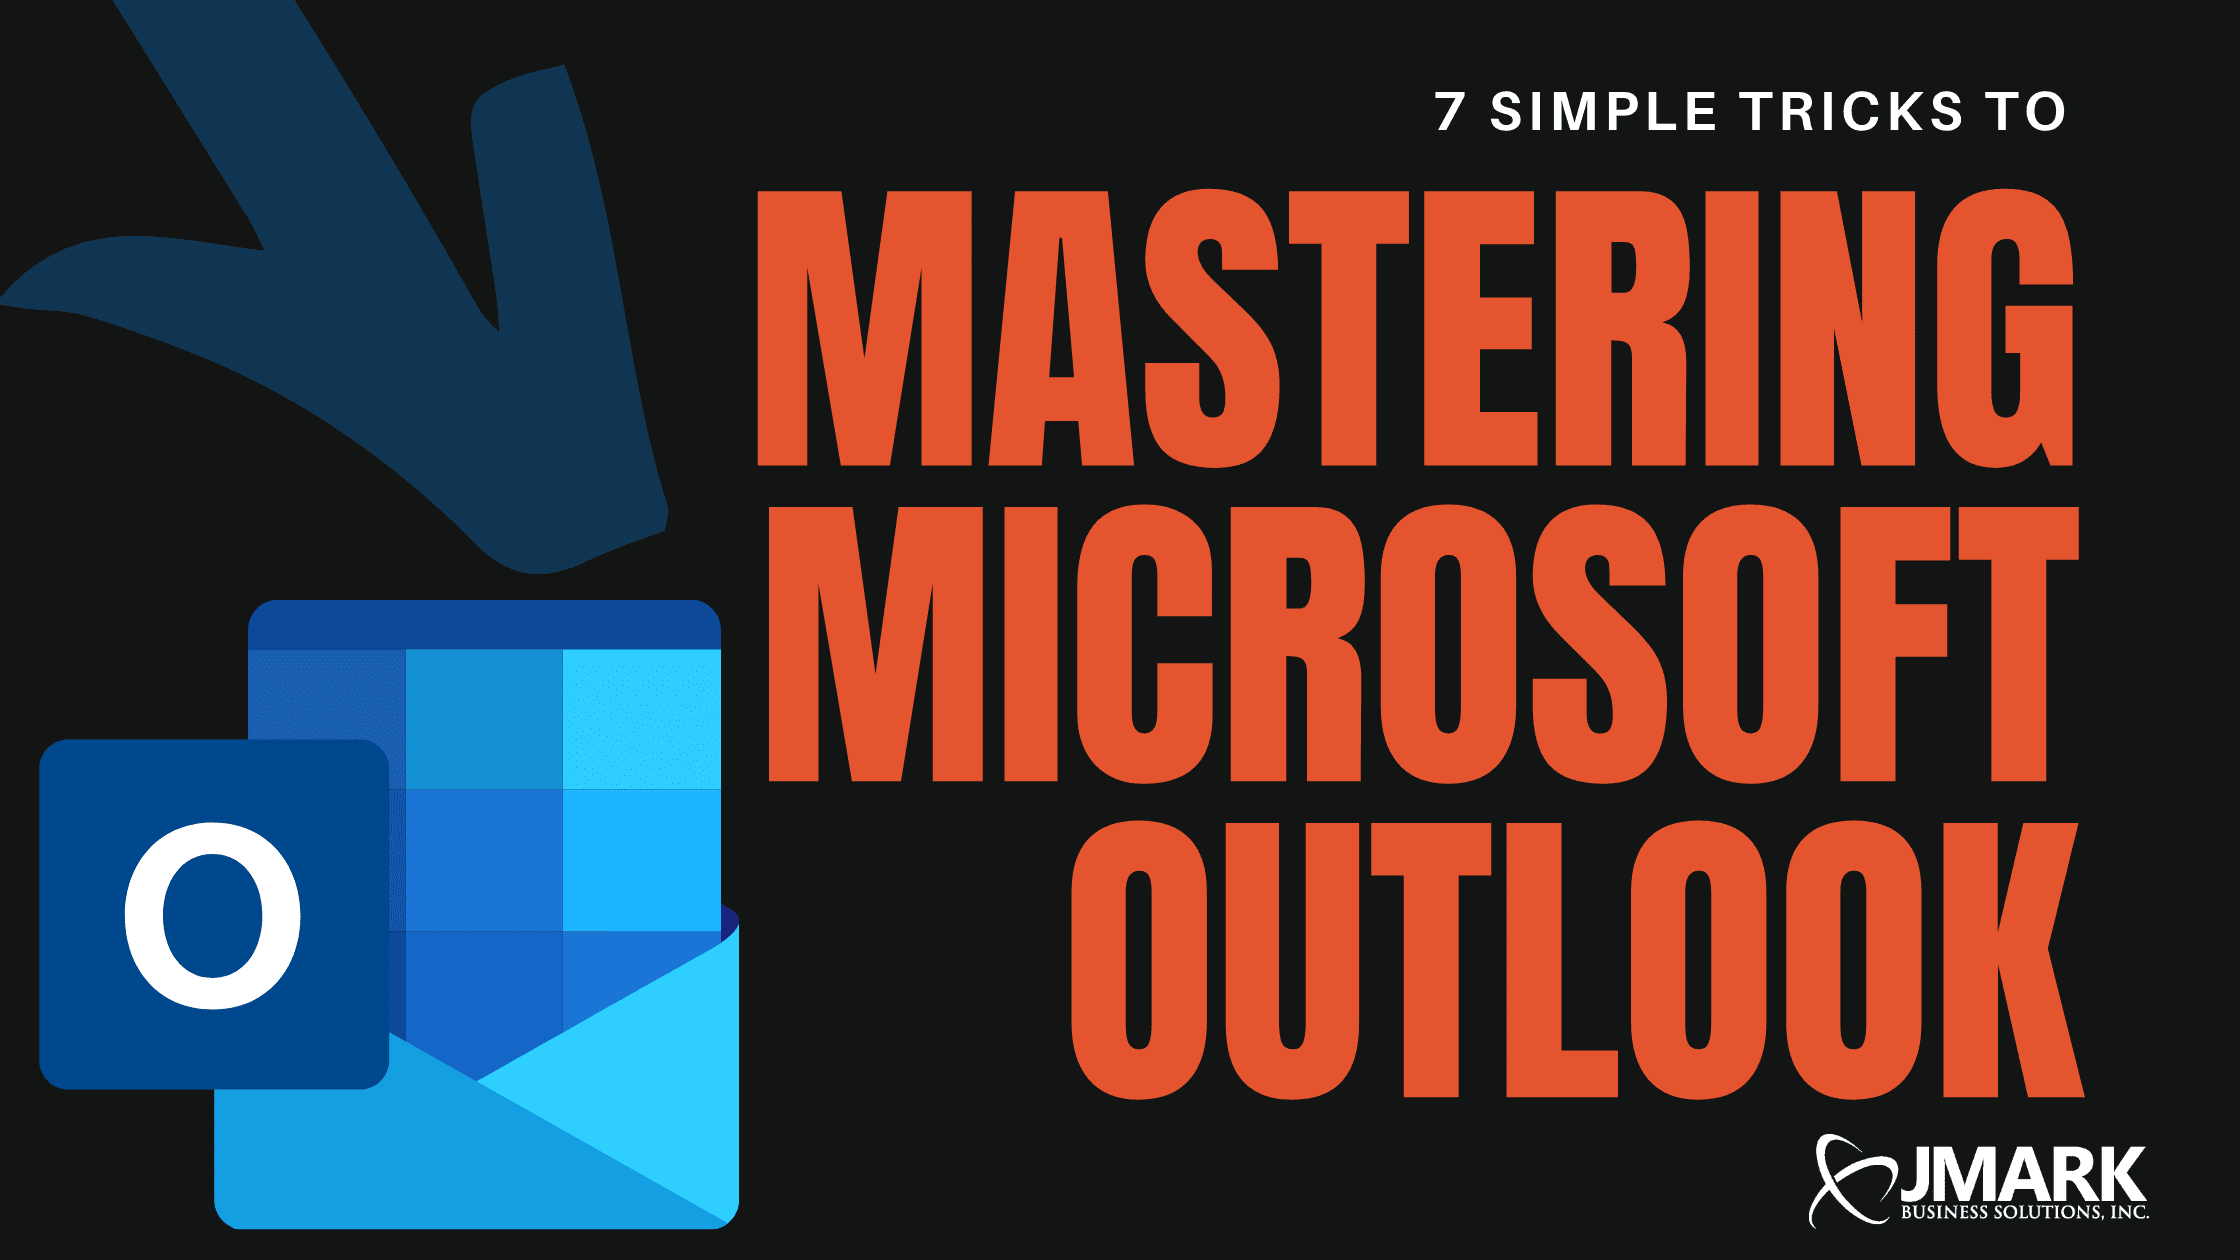 7 Simple Tricks to Mastering Microsoft Outlook